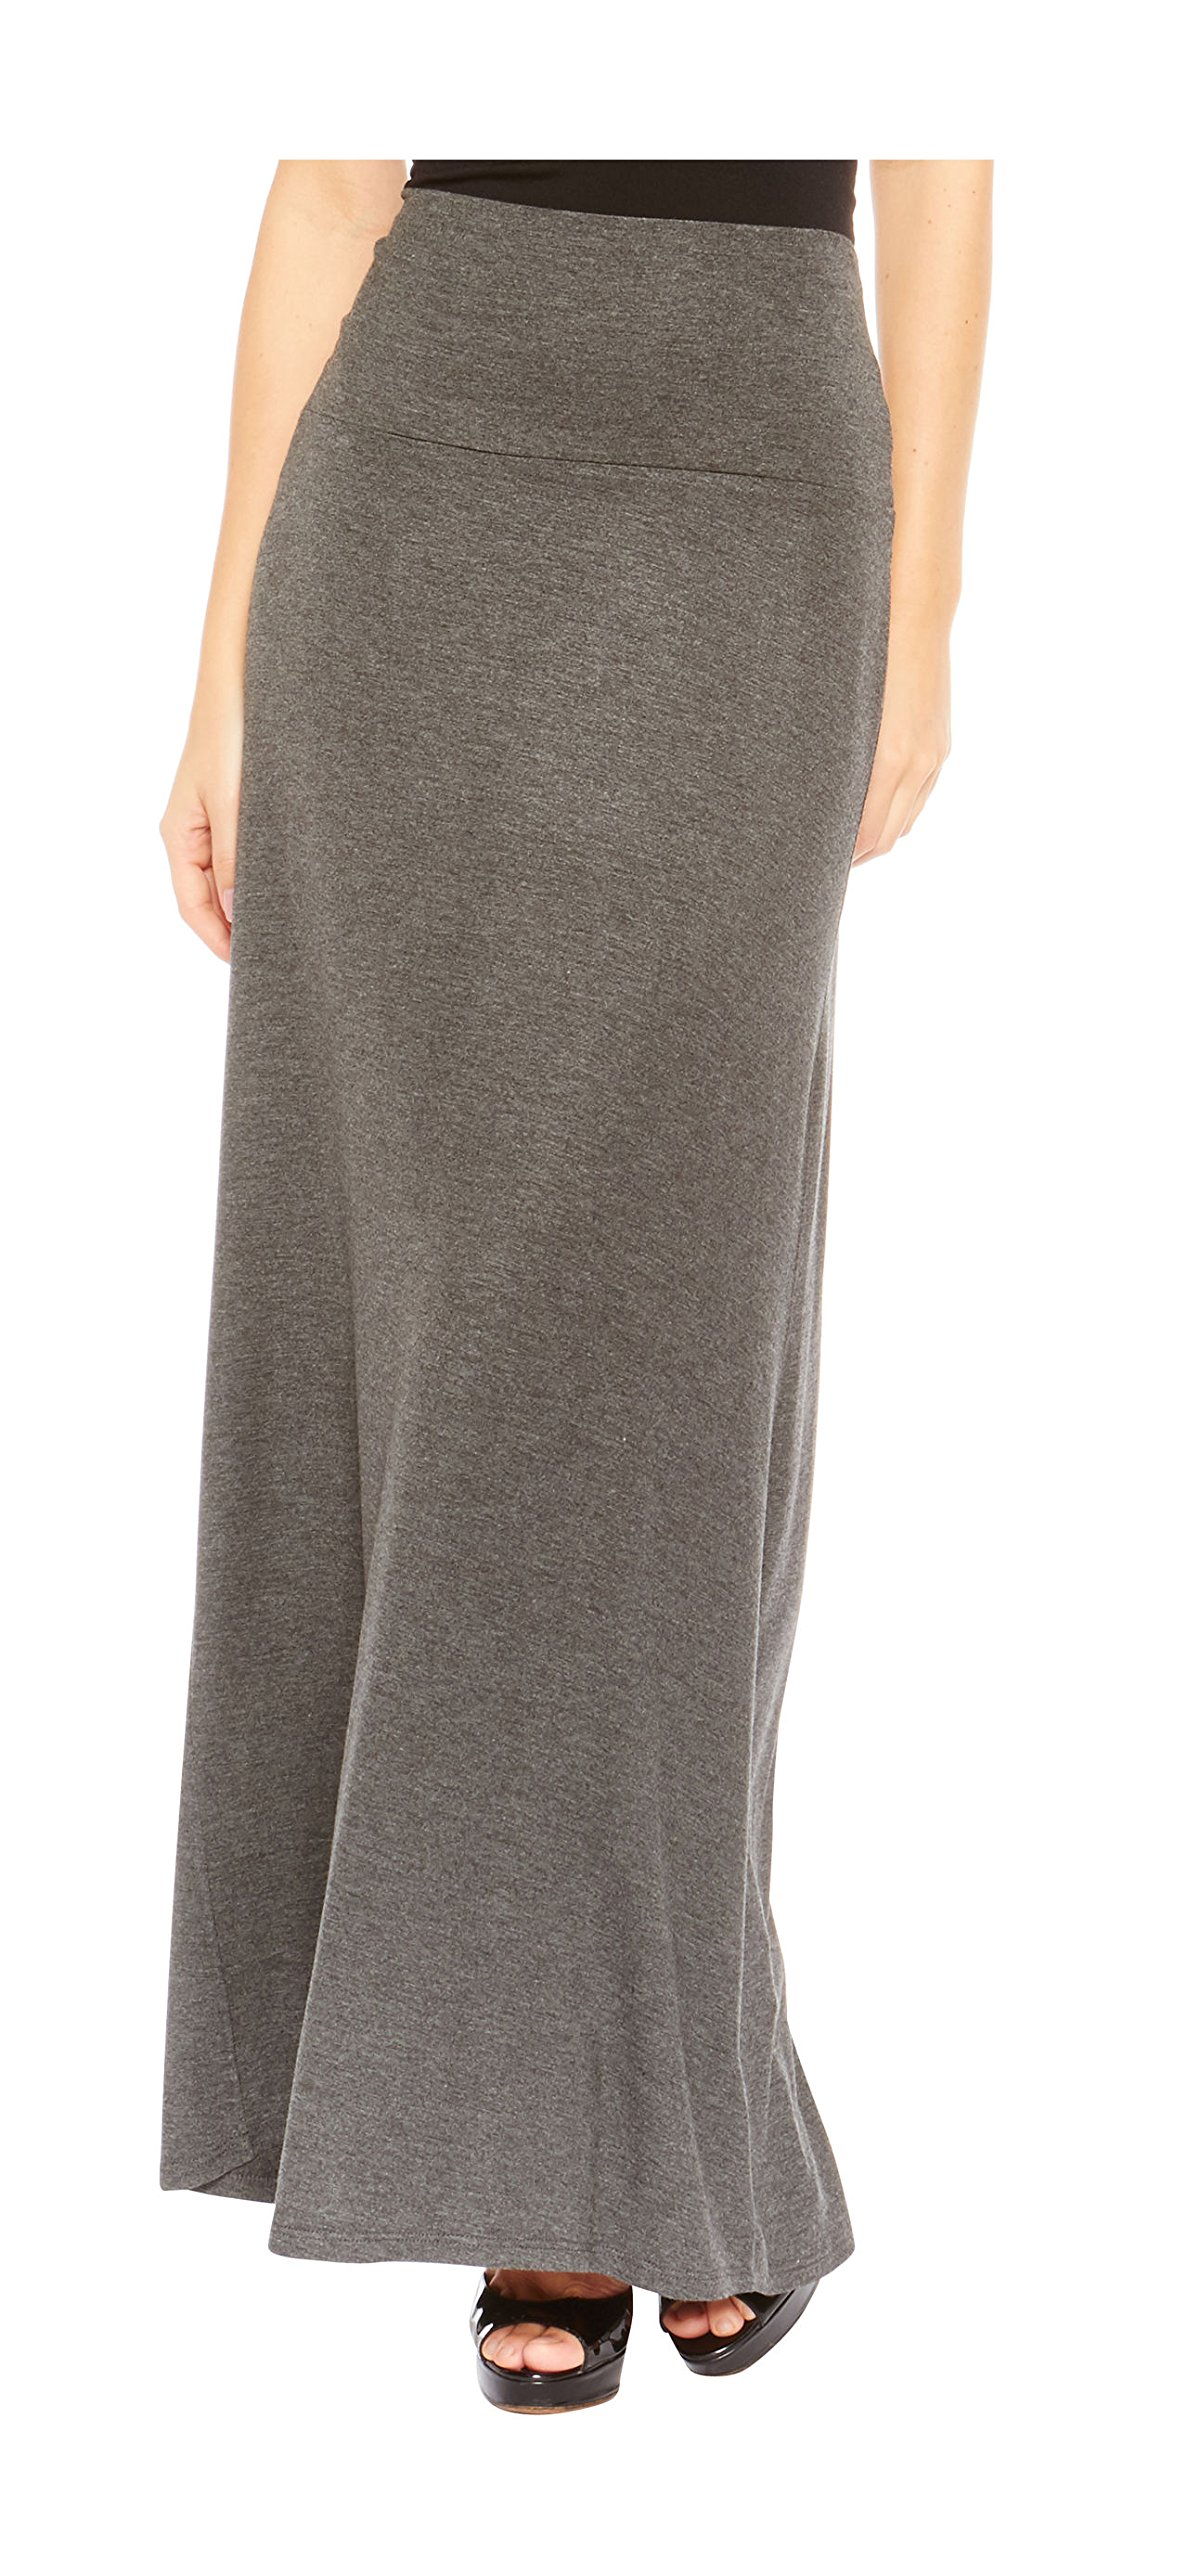 Red Hanger Women's Stylish Solid Long Maxi Skirt - Made in USA, Charcoal-XL